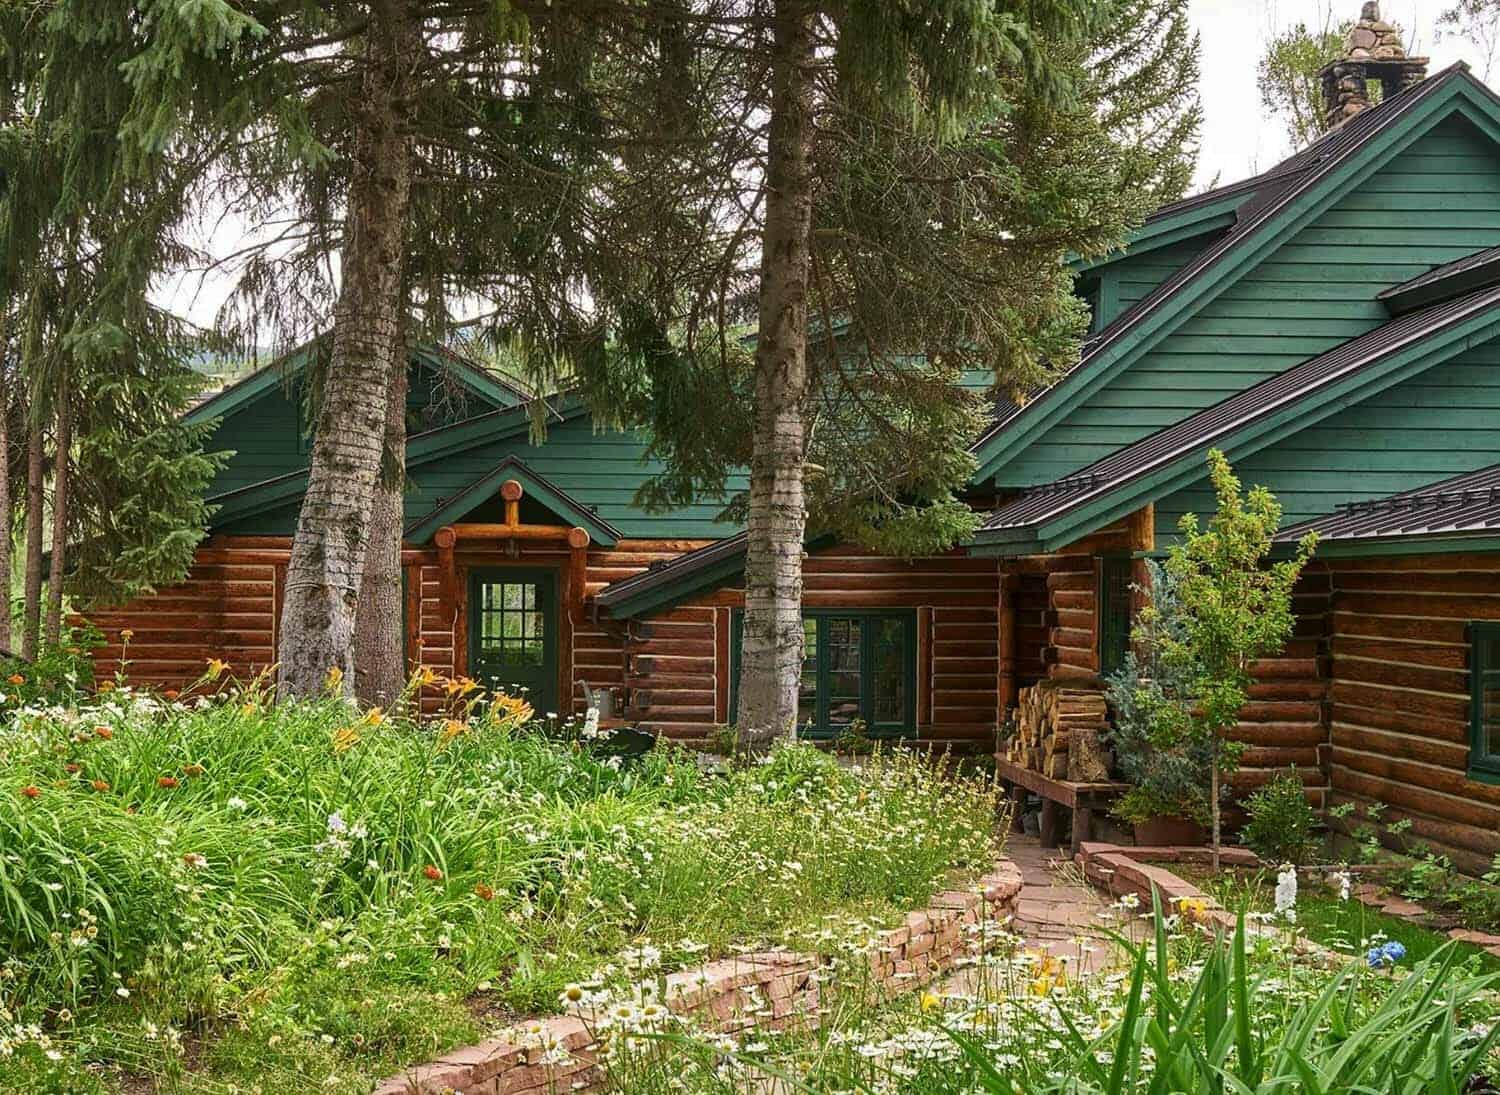 This Modern Rustic Log Cabin Was Designed By Gerber Berend Design Build Nestled On A Tree Lined Residential Neighborhood In Old Town Steamboat Springs